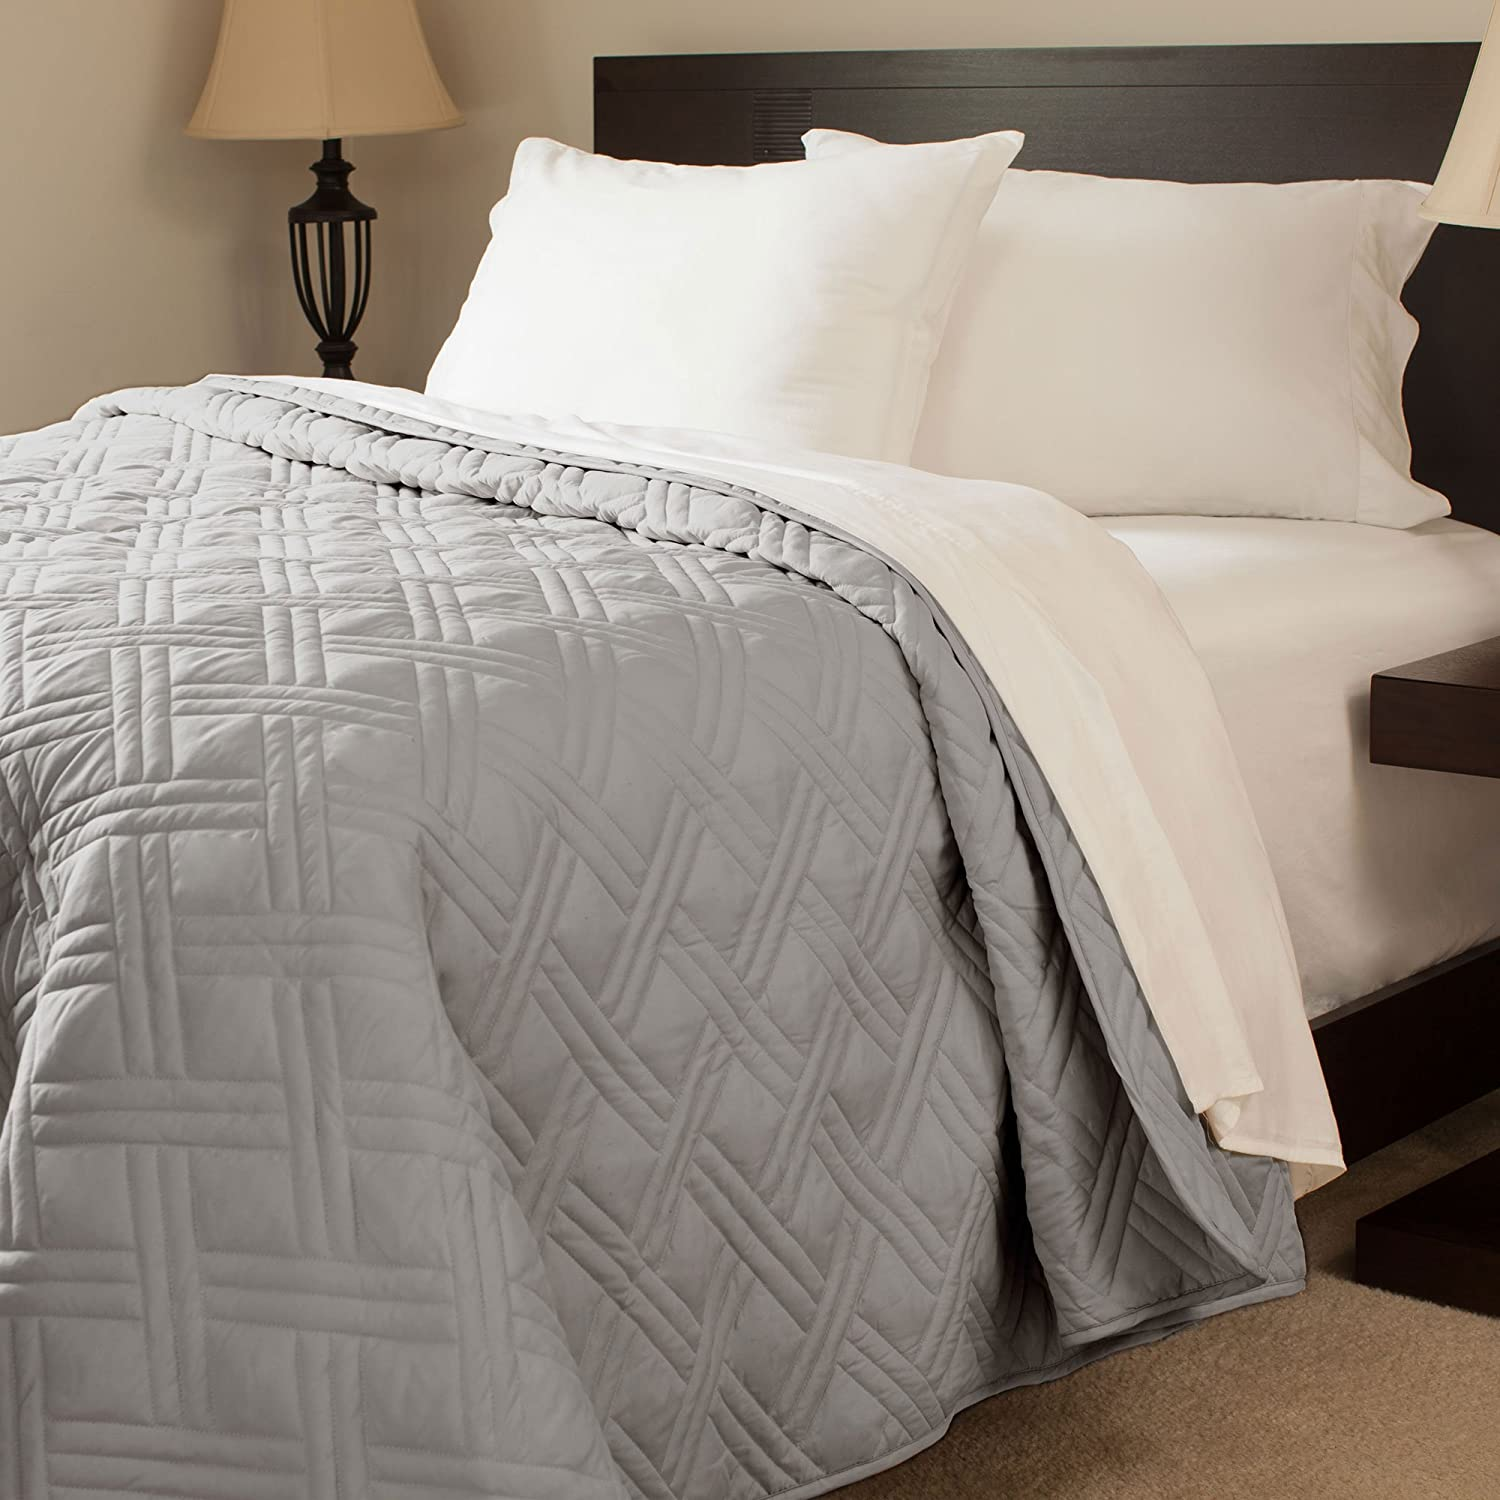 Bedford Home Solid Color Bed Quilt, Full/Queen, Silver